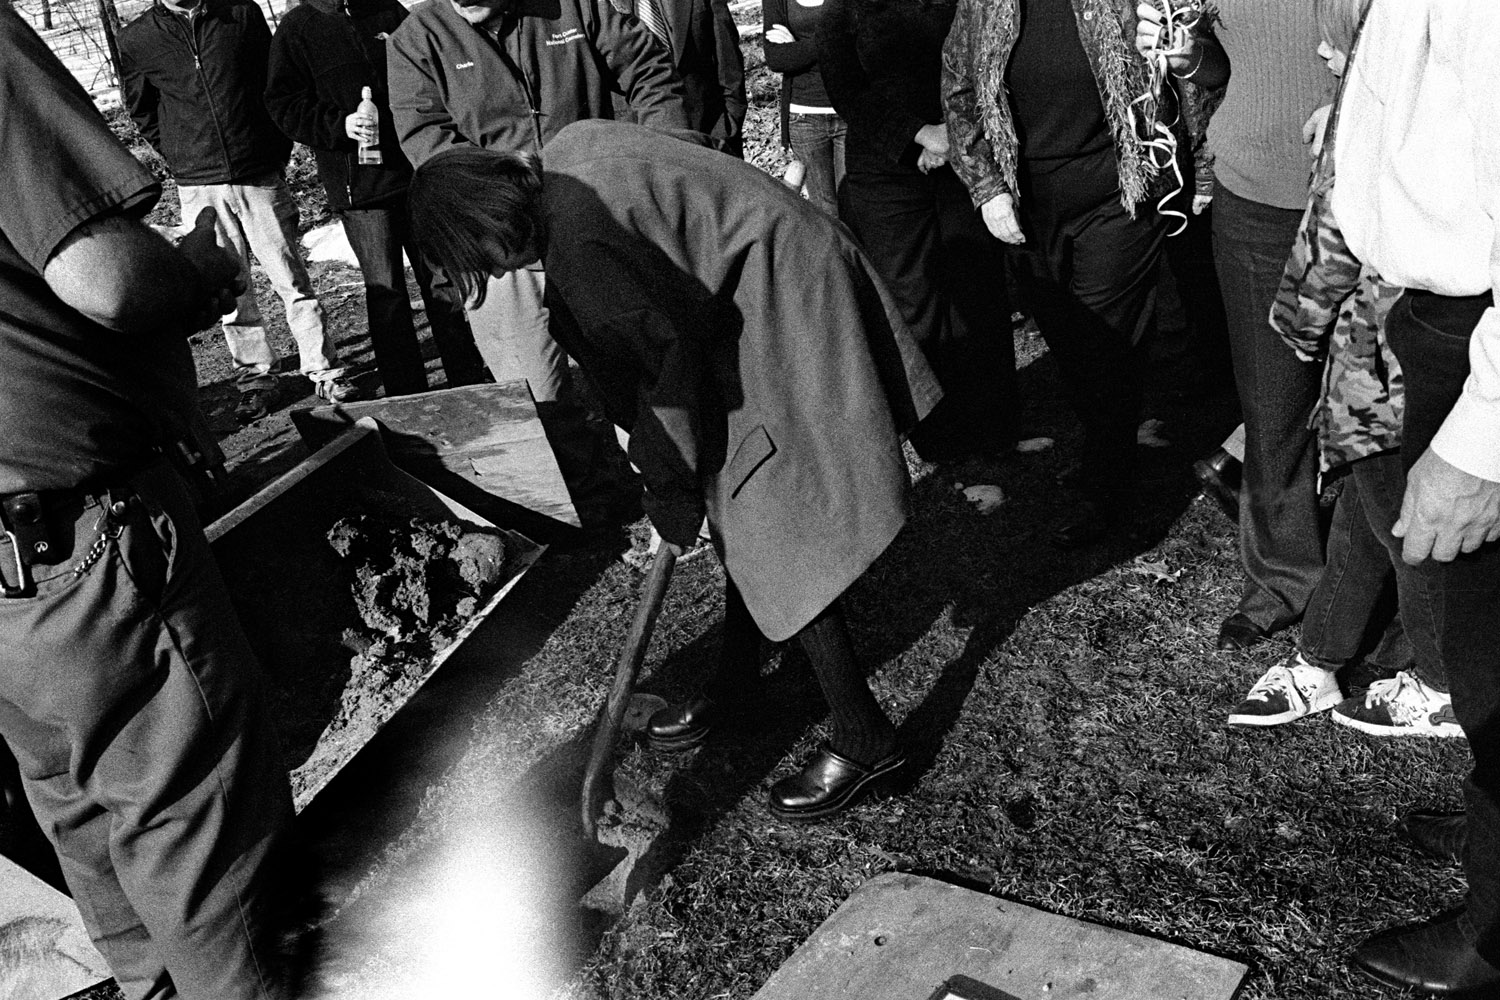 Friends and family, as a symbolic gesture to bid their farewells, shovel dirt over the ashes of U.S. Soldier Specialist Dirk Terpstra, 26, who, after serving a 12-month tour in Afghanistan in 2009, committed suicide near his home in Michigan. March 8, 2010.